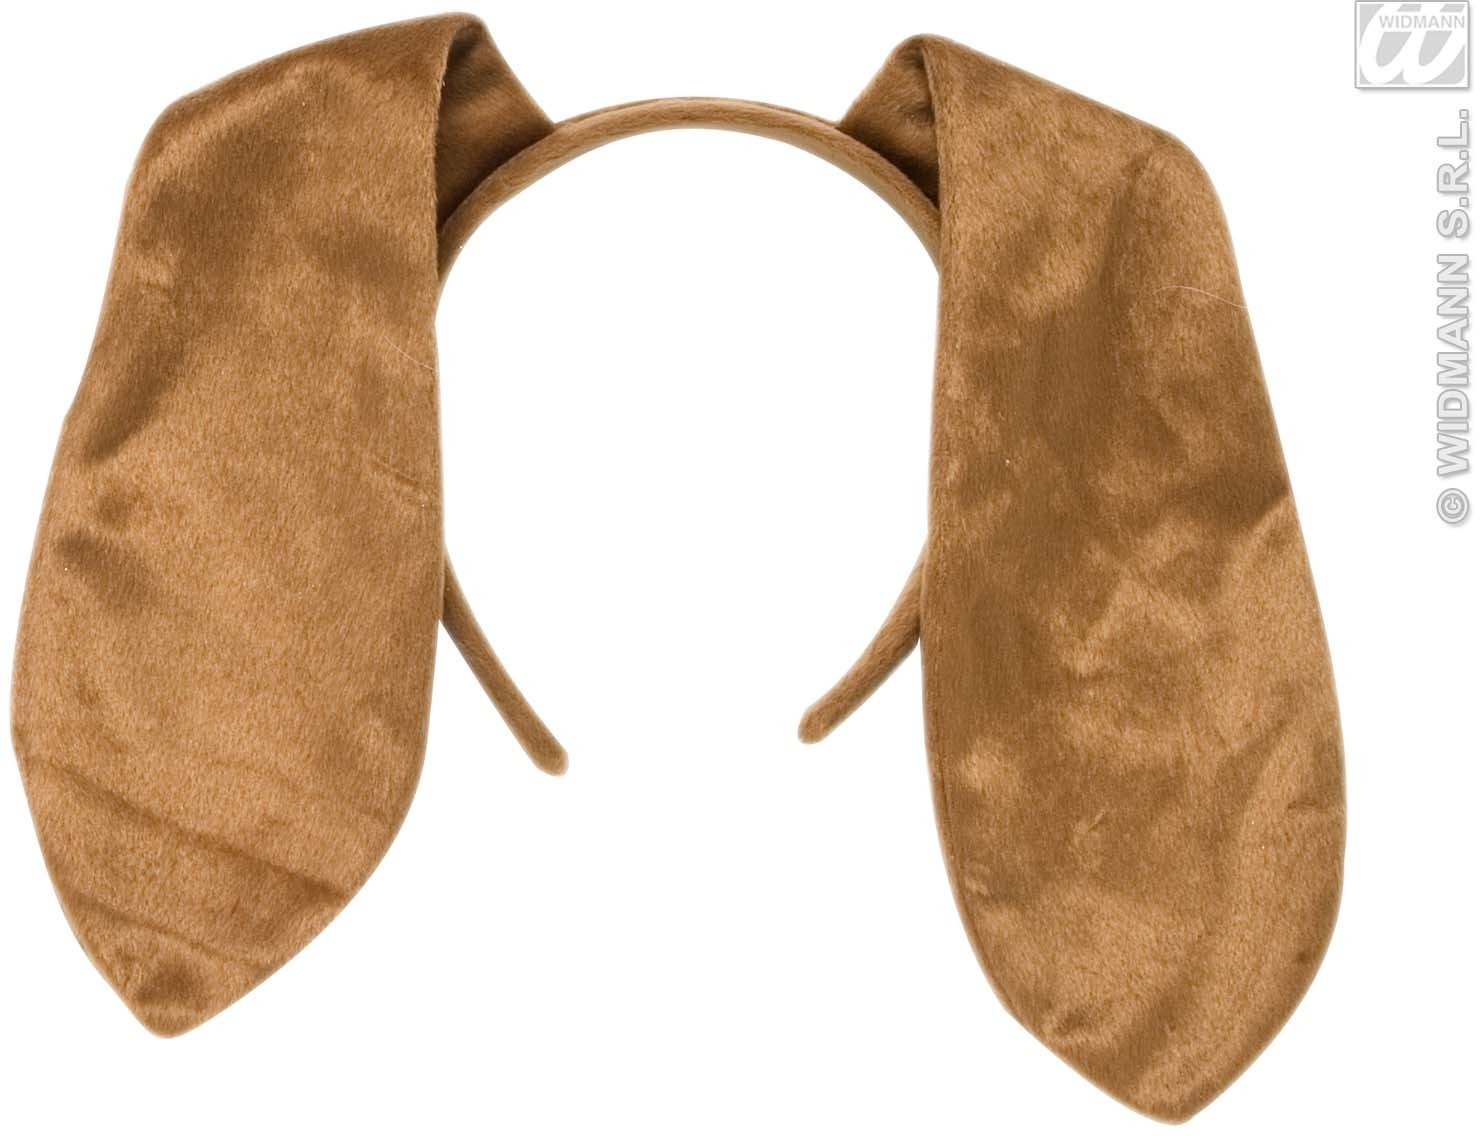 Dog Ears Costume Pictures to Pin on Pinterest - PinsDaddy